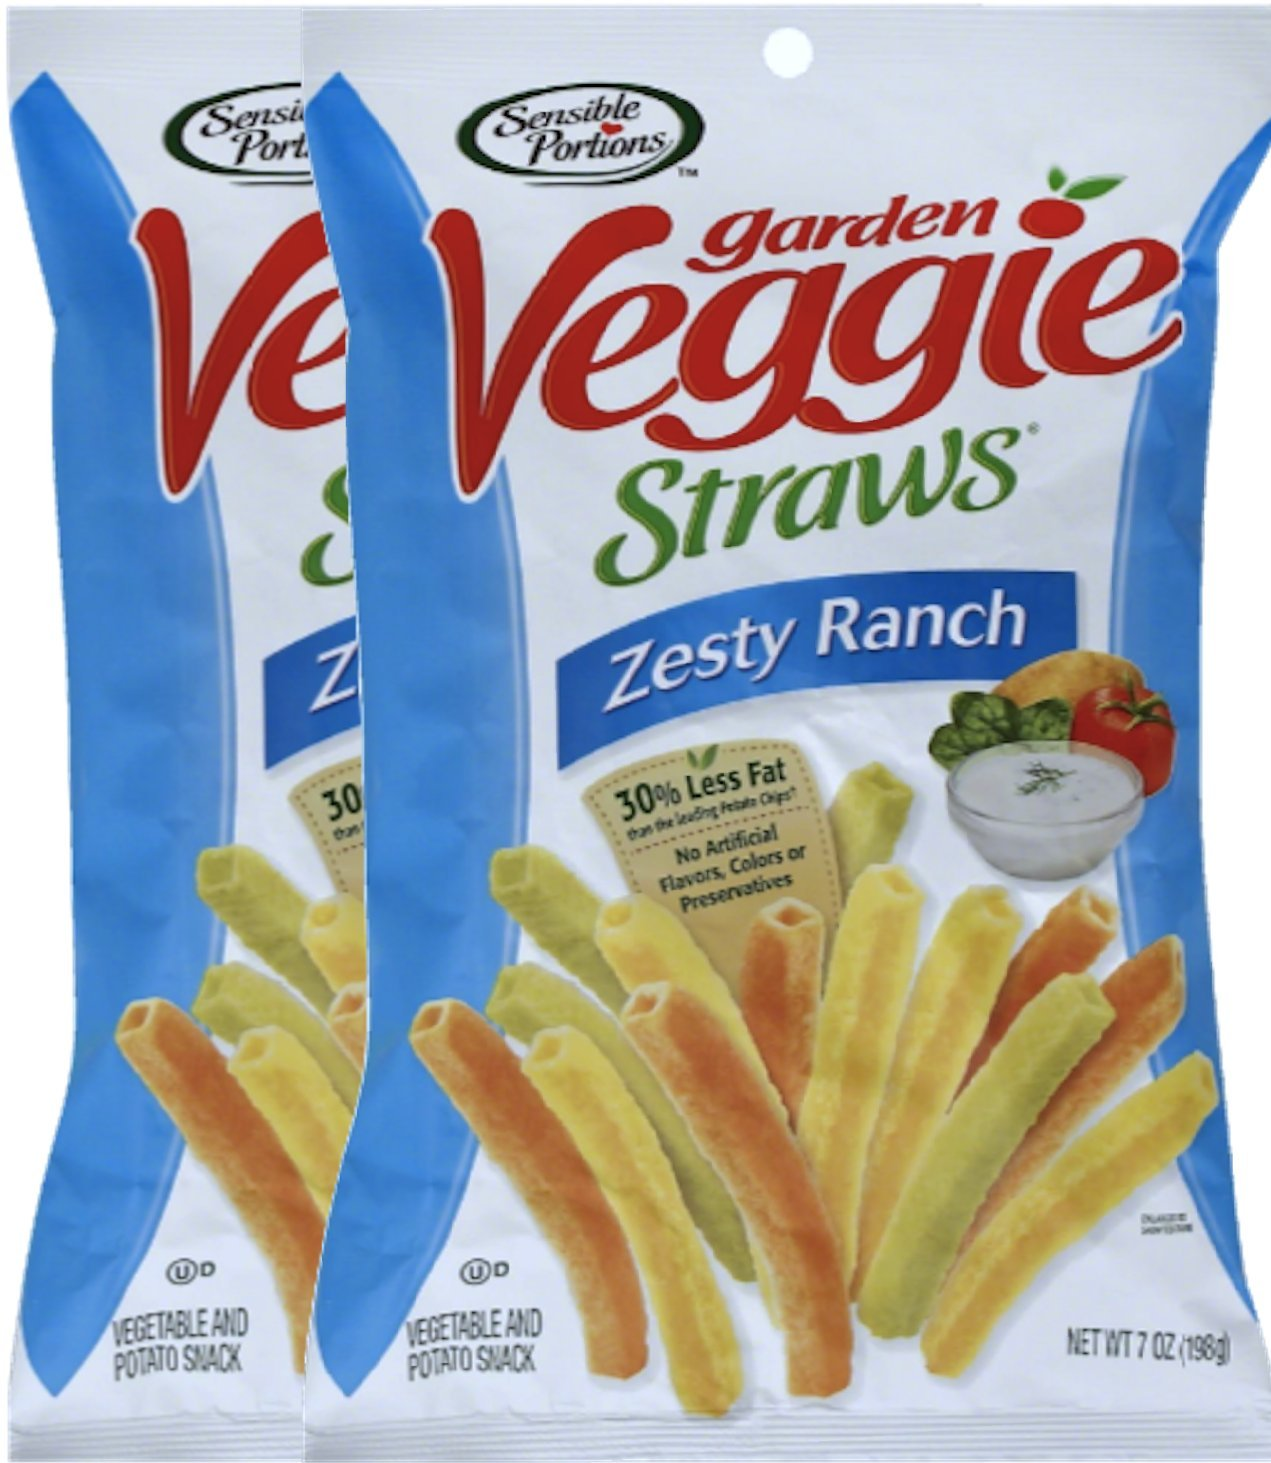 Sensible Portions Zesty Ranch Garden Veggie Straws, 7 oz Snack Care Package for College, Military, Sports (2)